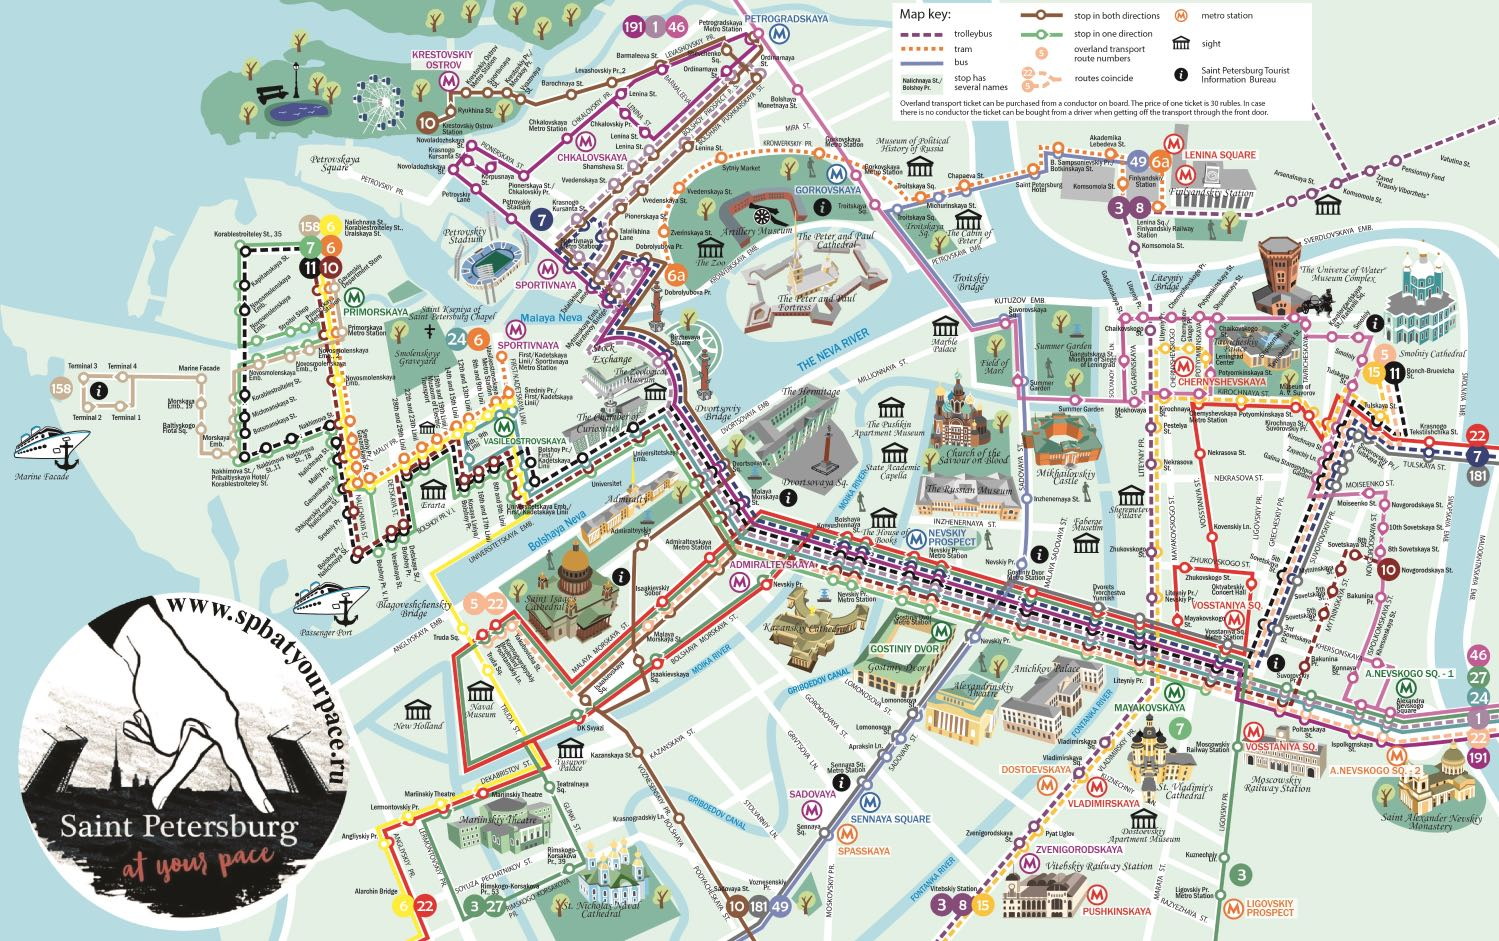 St Petersburg tourist map City center - High resolution